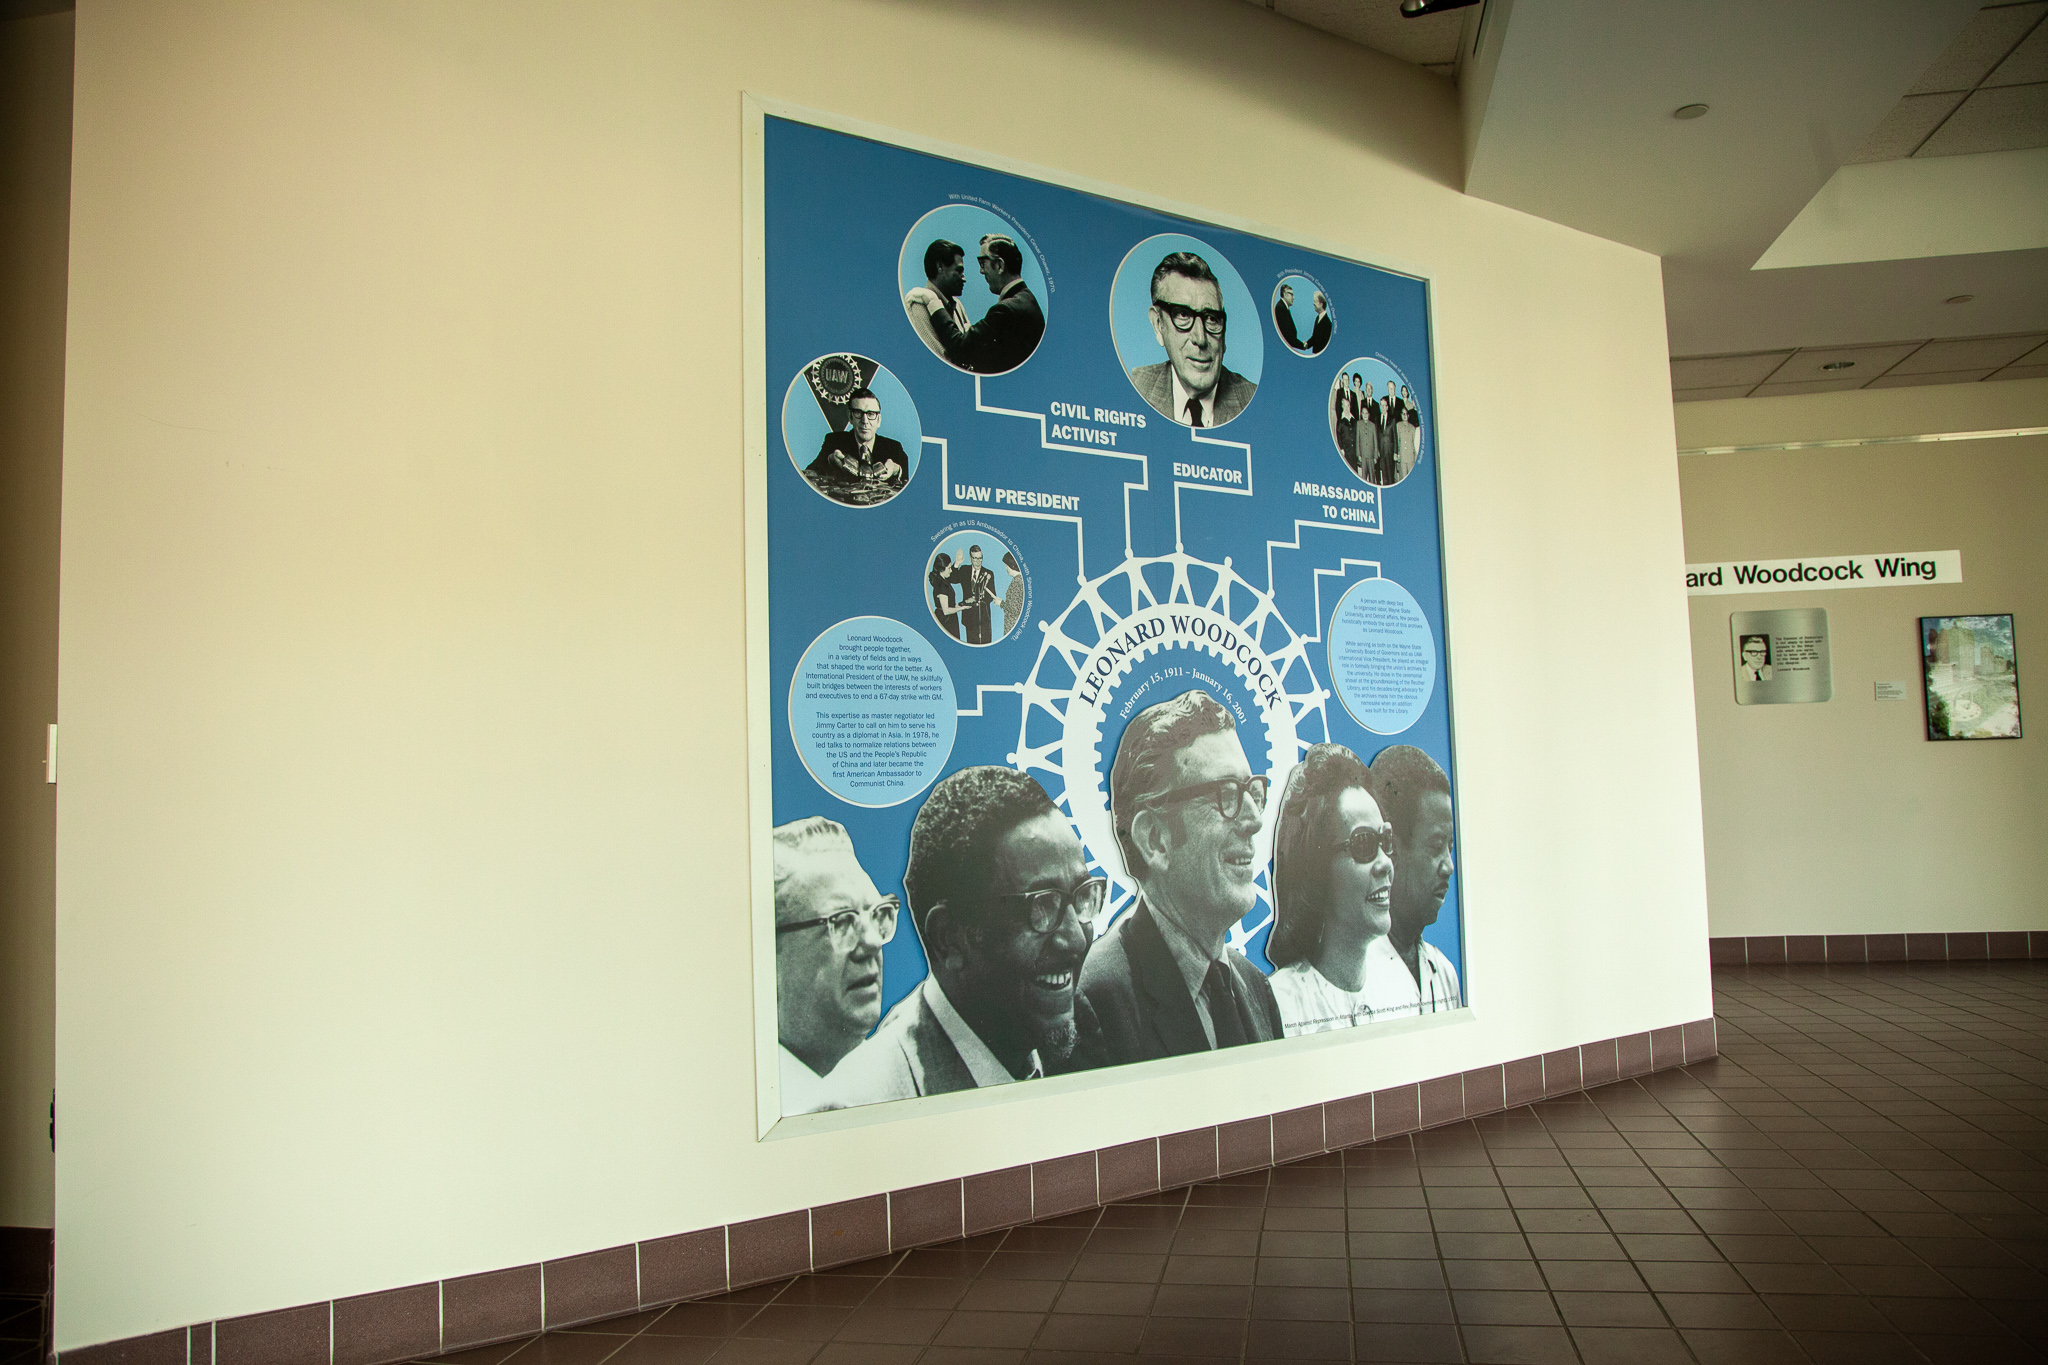 The Leonard Woodcock wall mural shown in the full space of the Leonard Woodcock Wing at Wayne State.